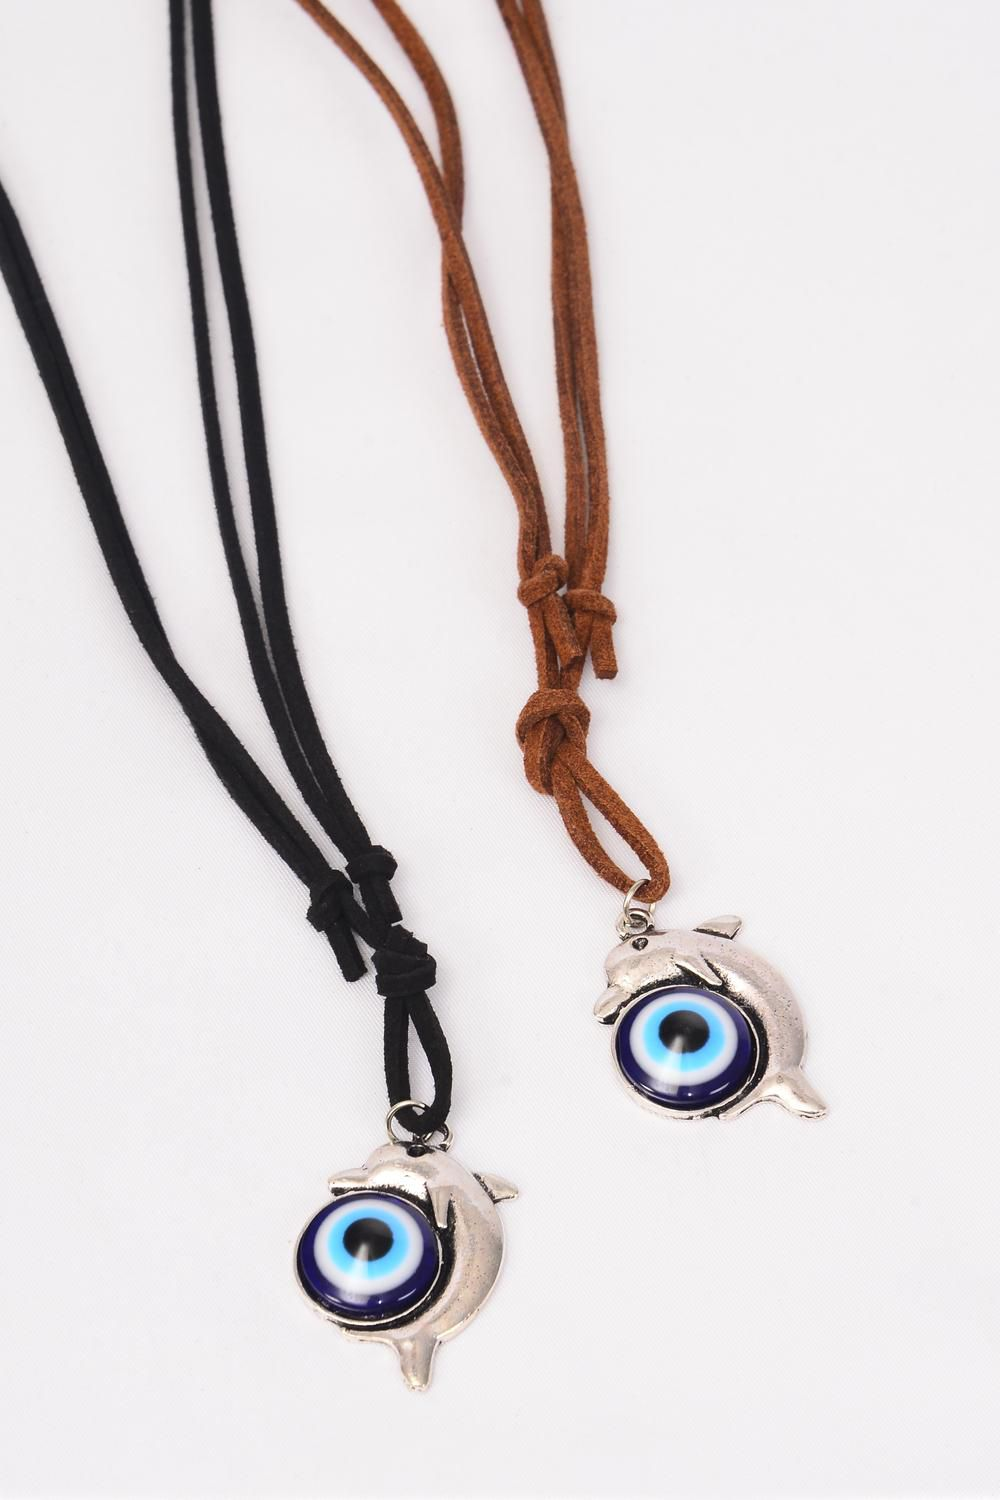 "Necklace Leather Feel Metal Antique Dolphin Blue Venetian Glass/DZ match 02925 Necklace **Adjustable** Owl-1.5""x 1"" Wide,6 BLack,6 Brown Mix,Hang Tag & OPP Bag & UPC Code"